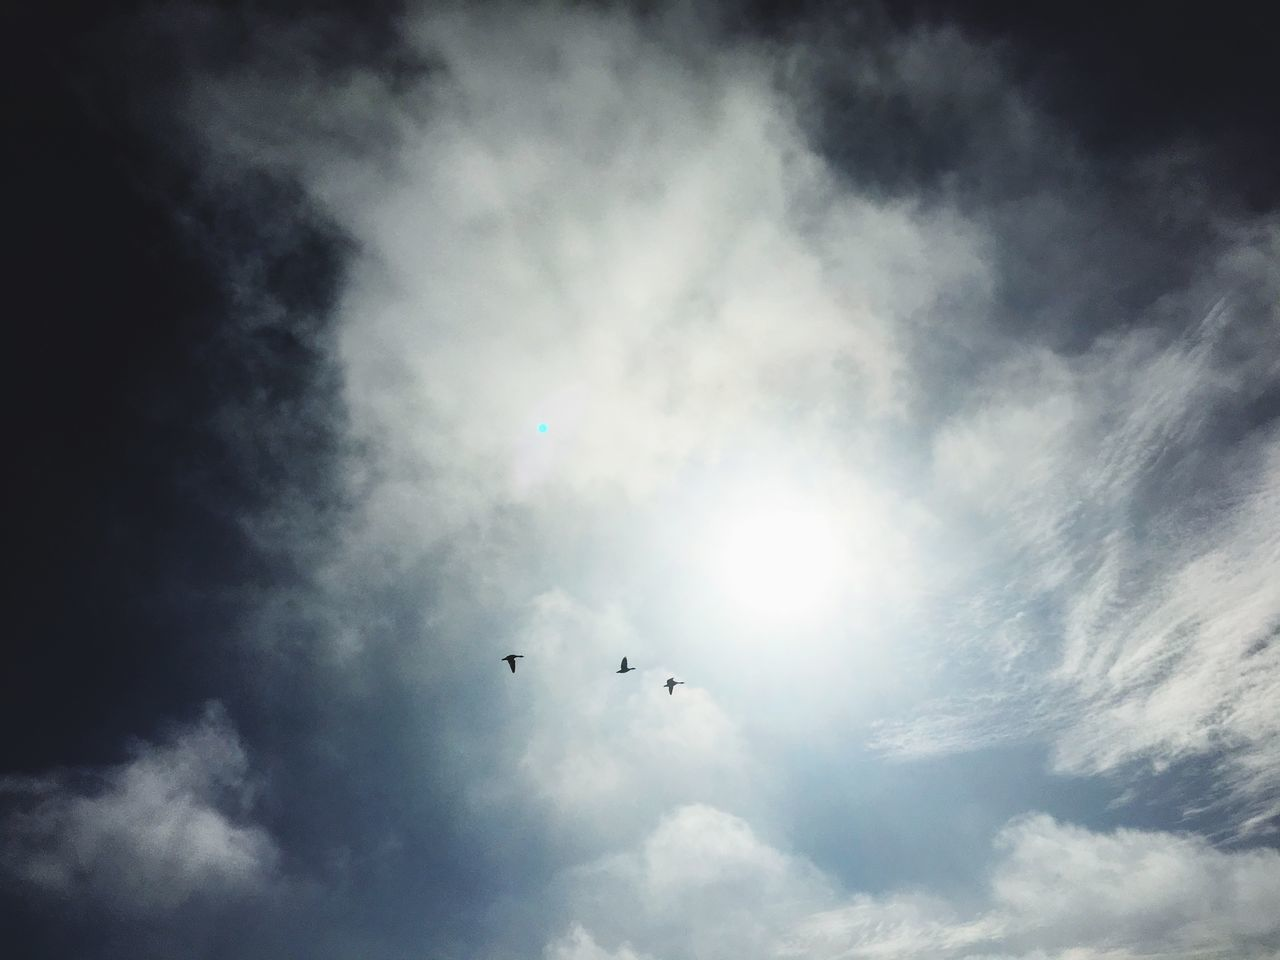 Flying Sky Low Angle View Cloud - Sky Bird Mid-air Nature Animal Themes No People Outdoors Animals In The Wild Day Beauty In Nature